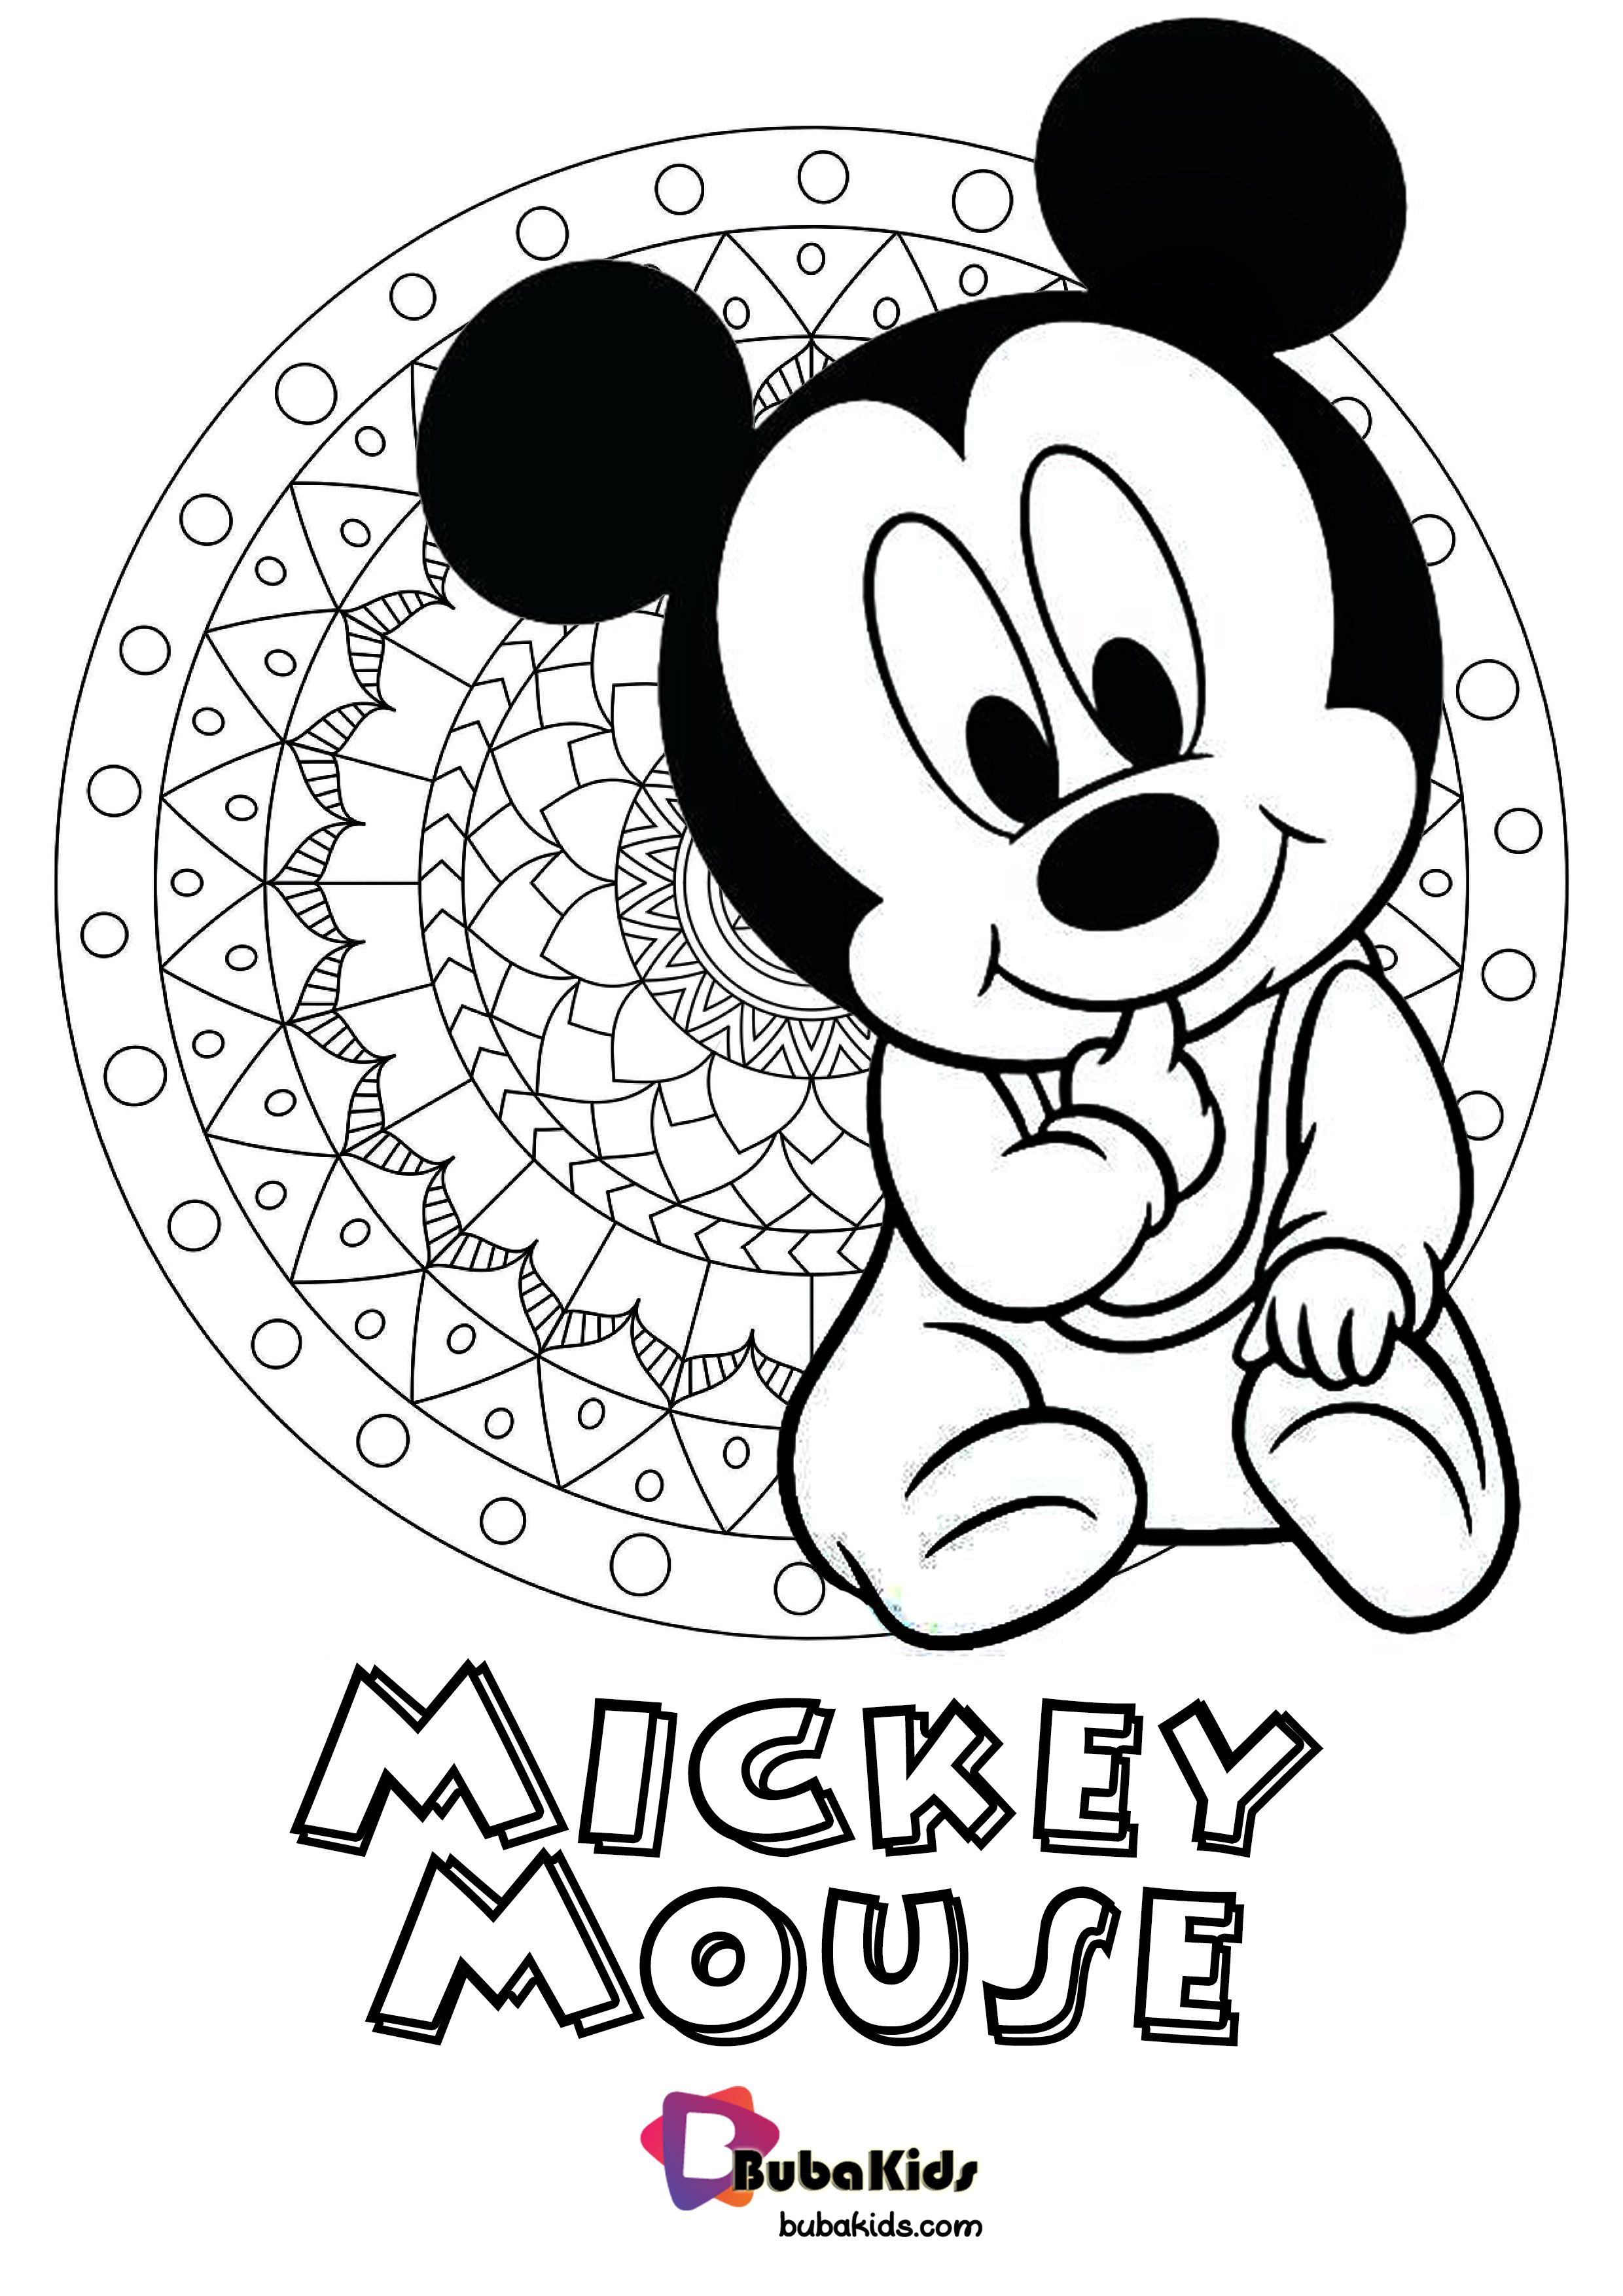 Check This Cute Baby Mickey Mouse Coloring Pages